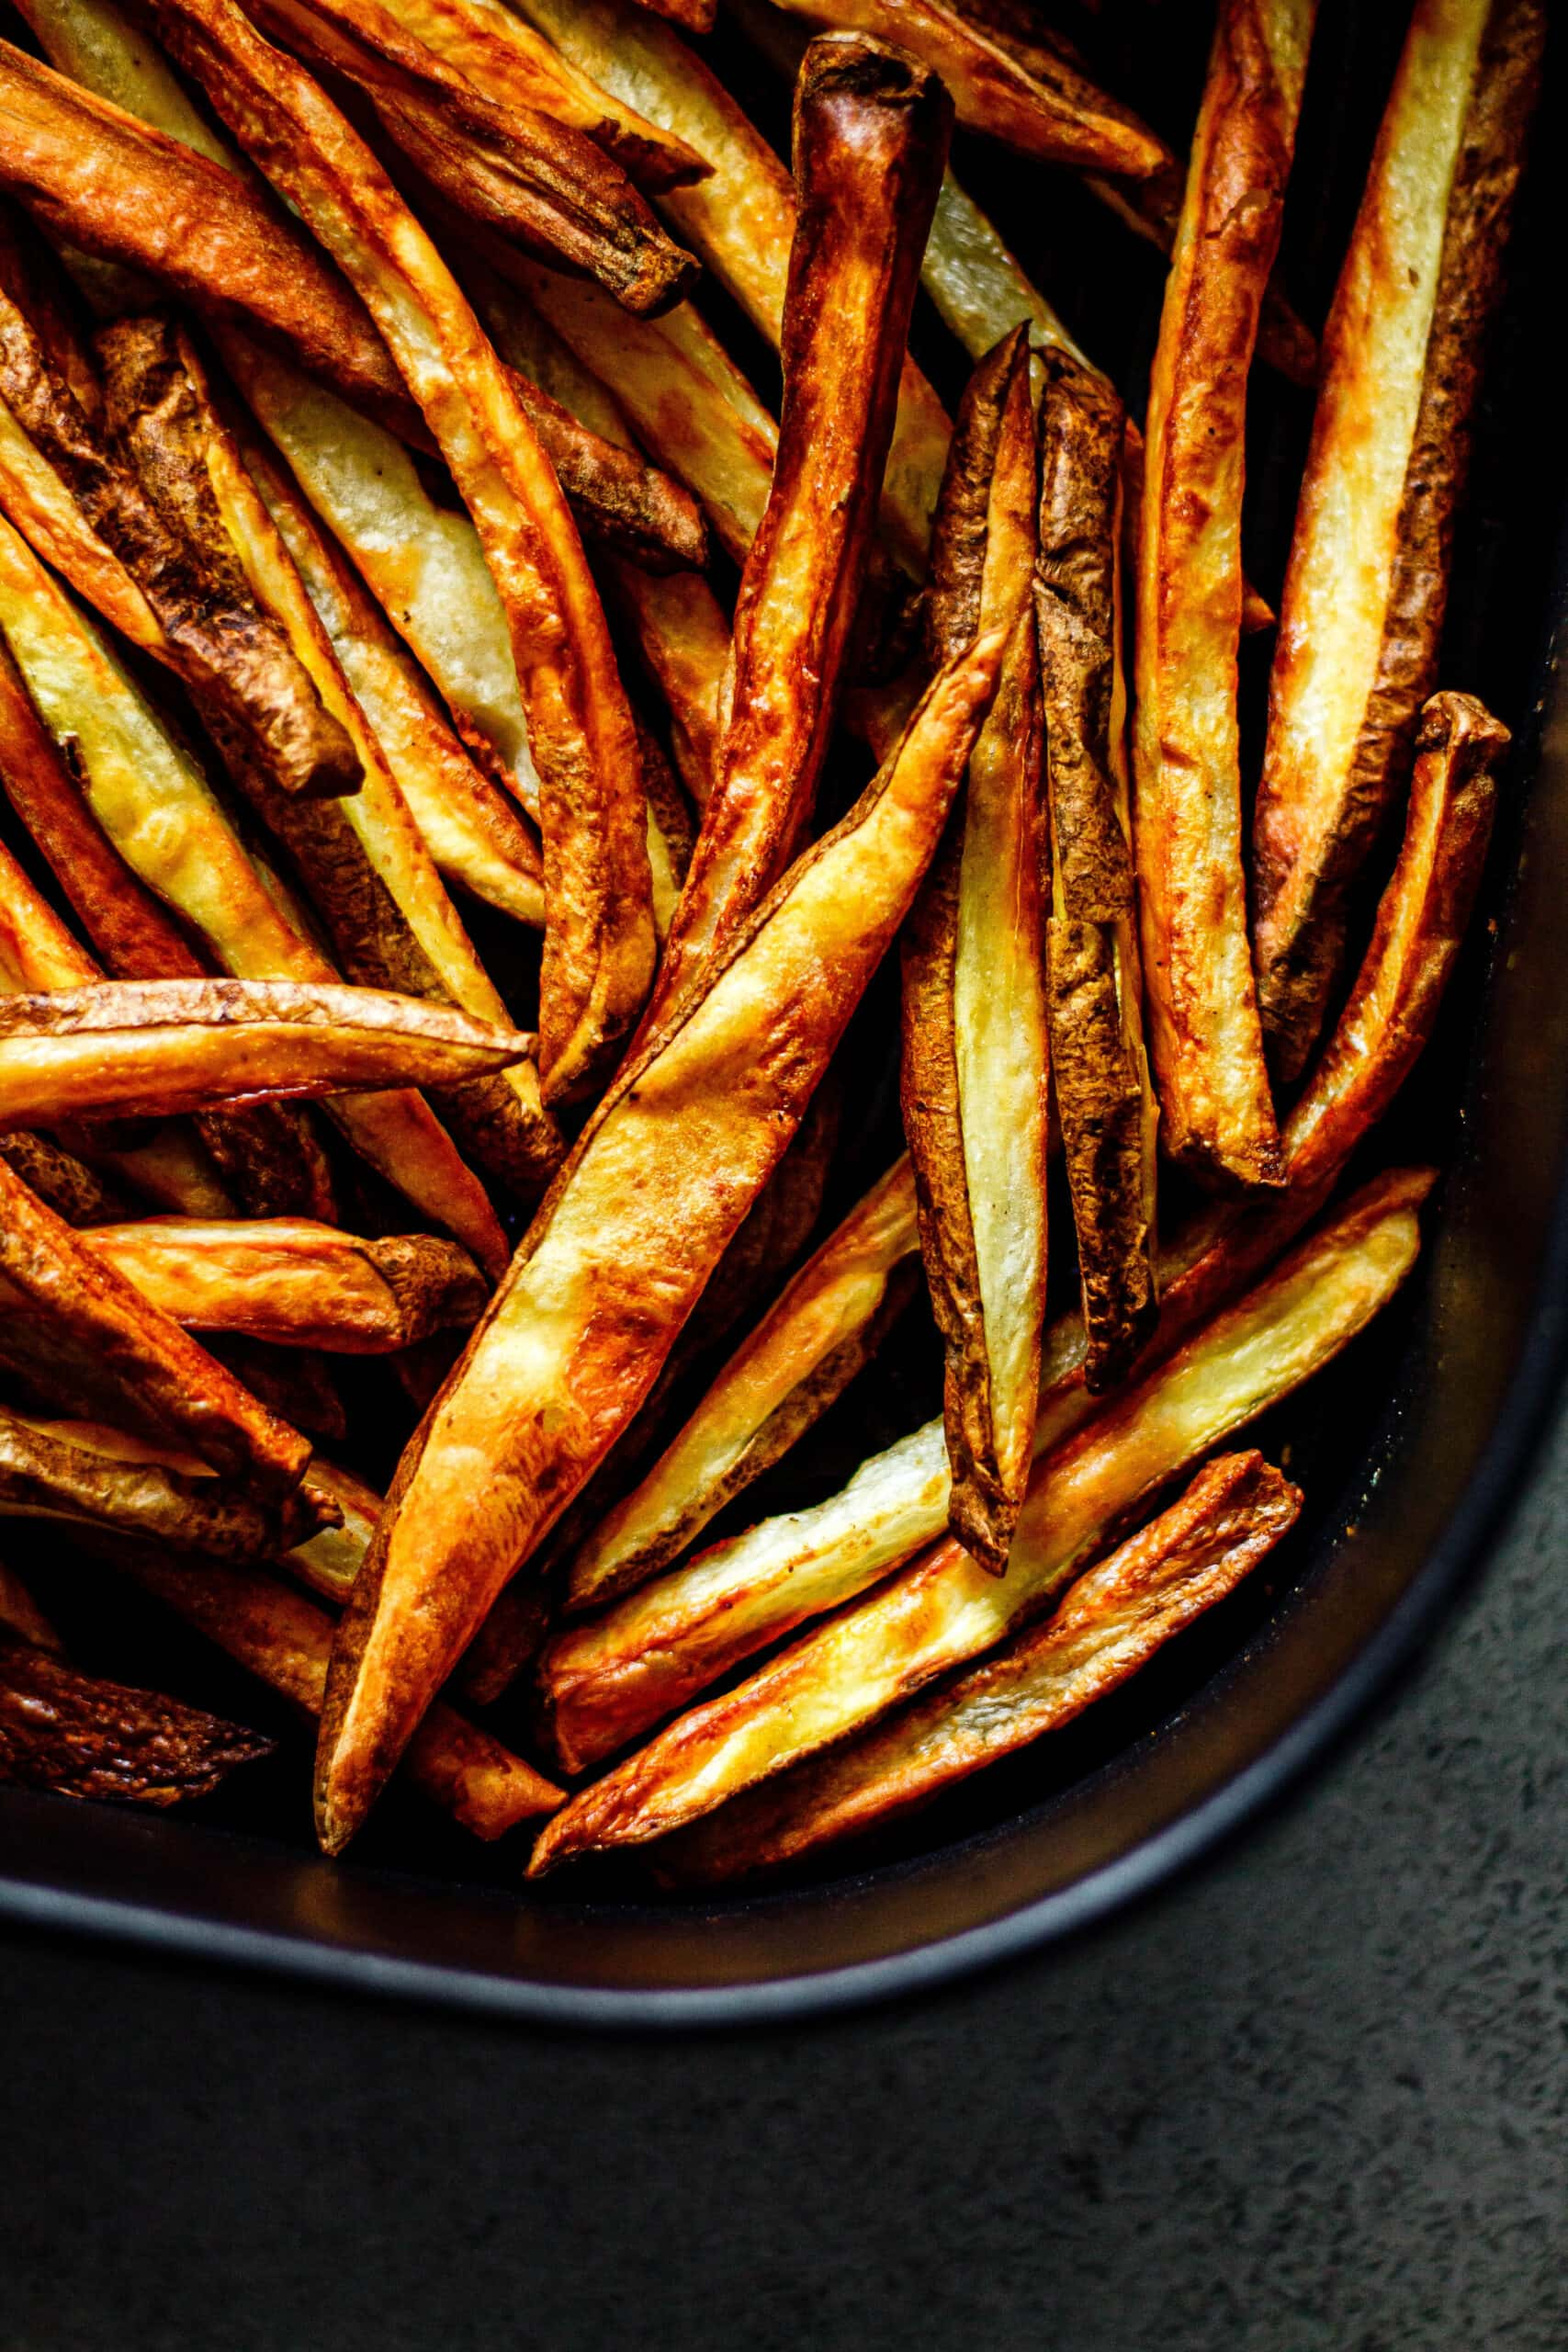 cooked French fries in black air fryer